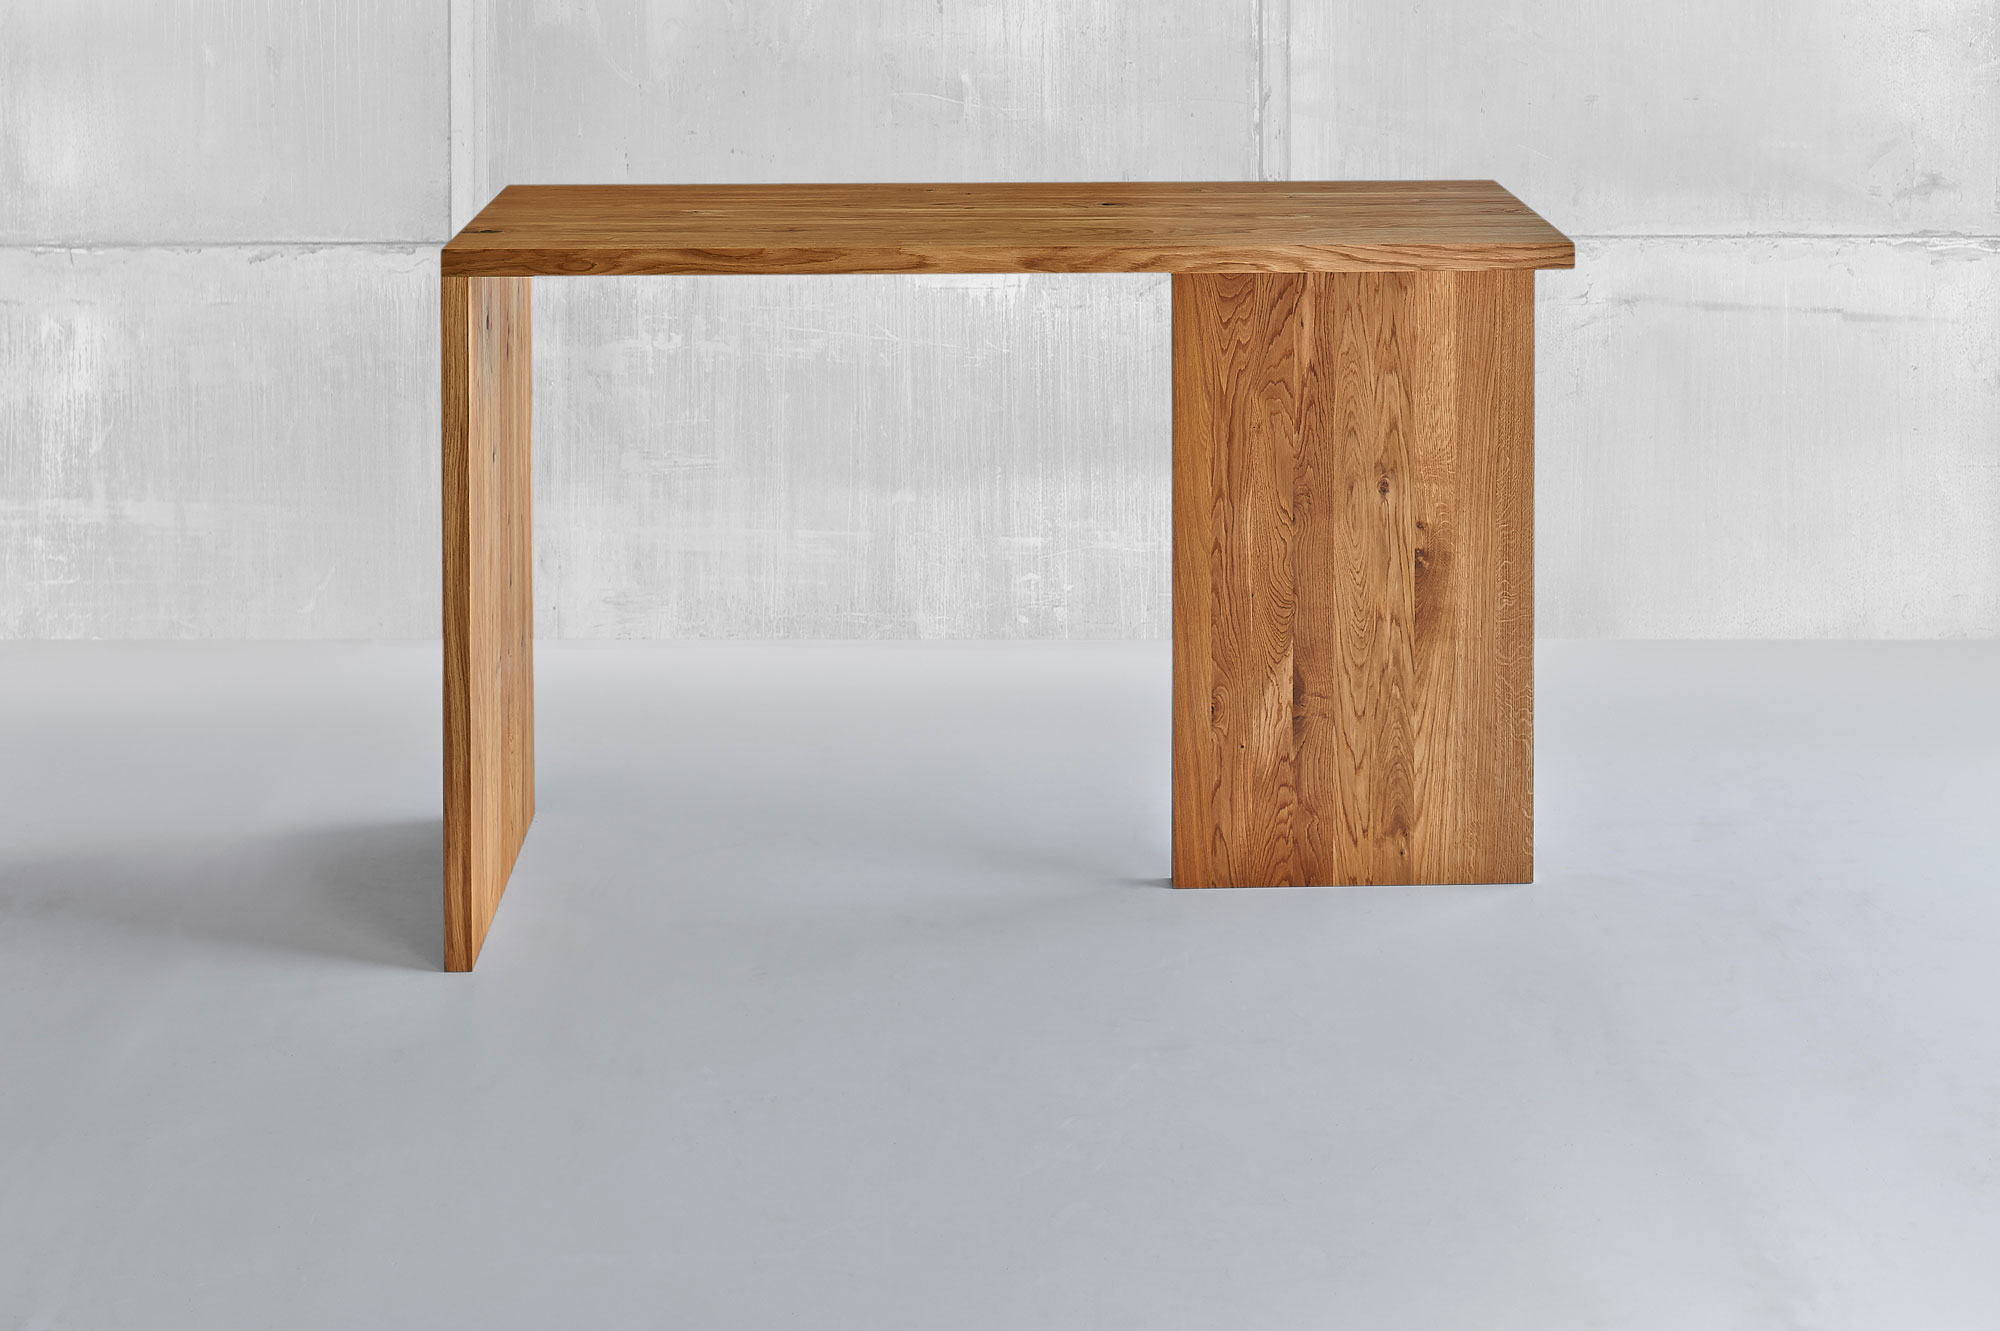 Solid Wood Console Table MENA CONSOLE 1458 custom made in solid wood by vitamin design